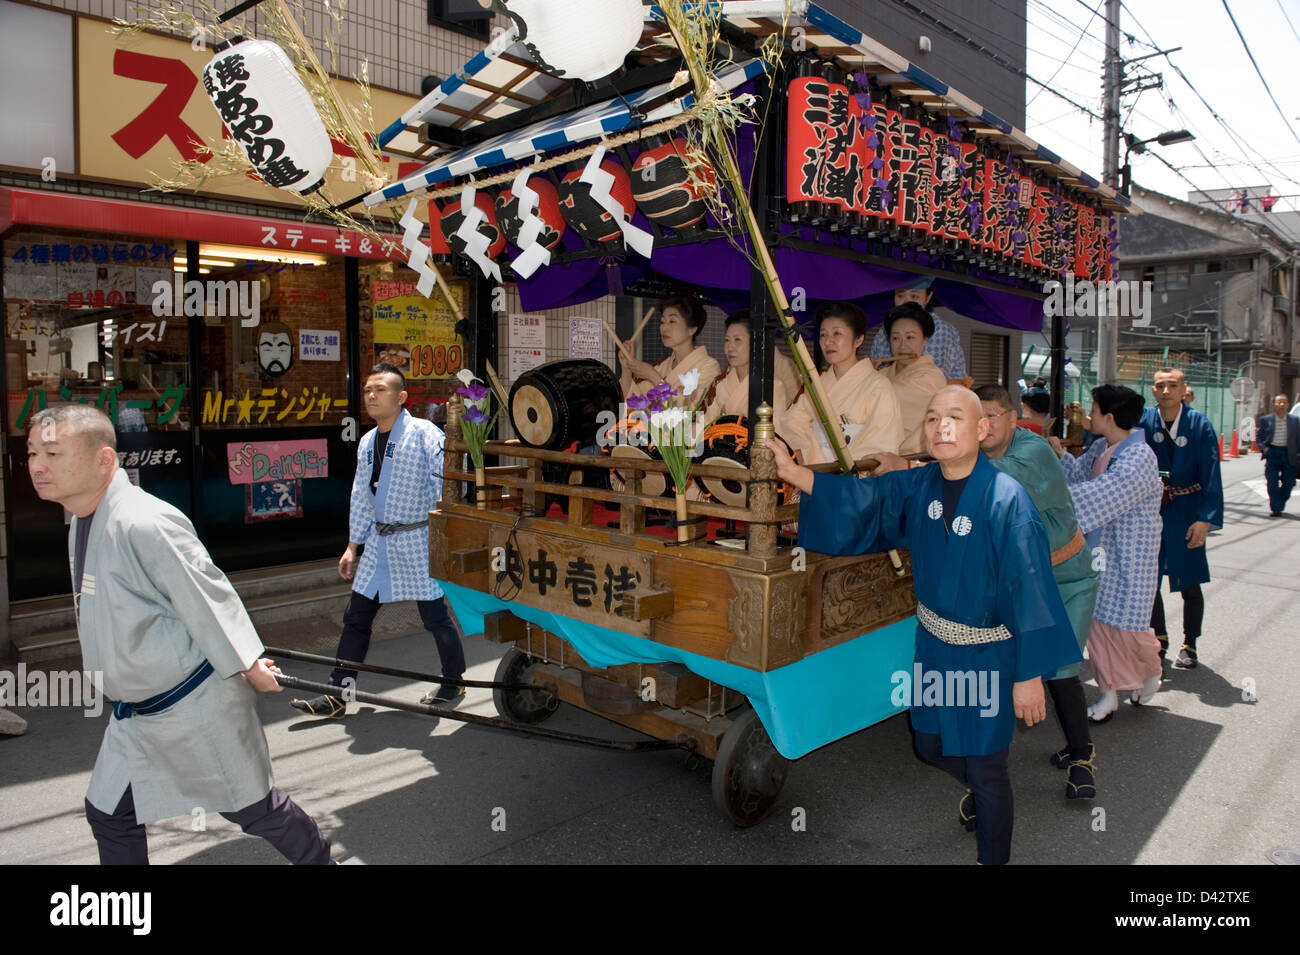 Wagon carrying female musicians wearing traditional kimono is pulled through a neighborhood during Sanja Matsuri - Stock Image